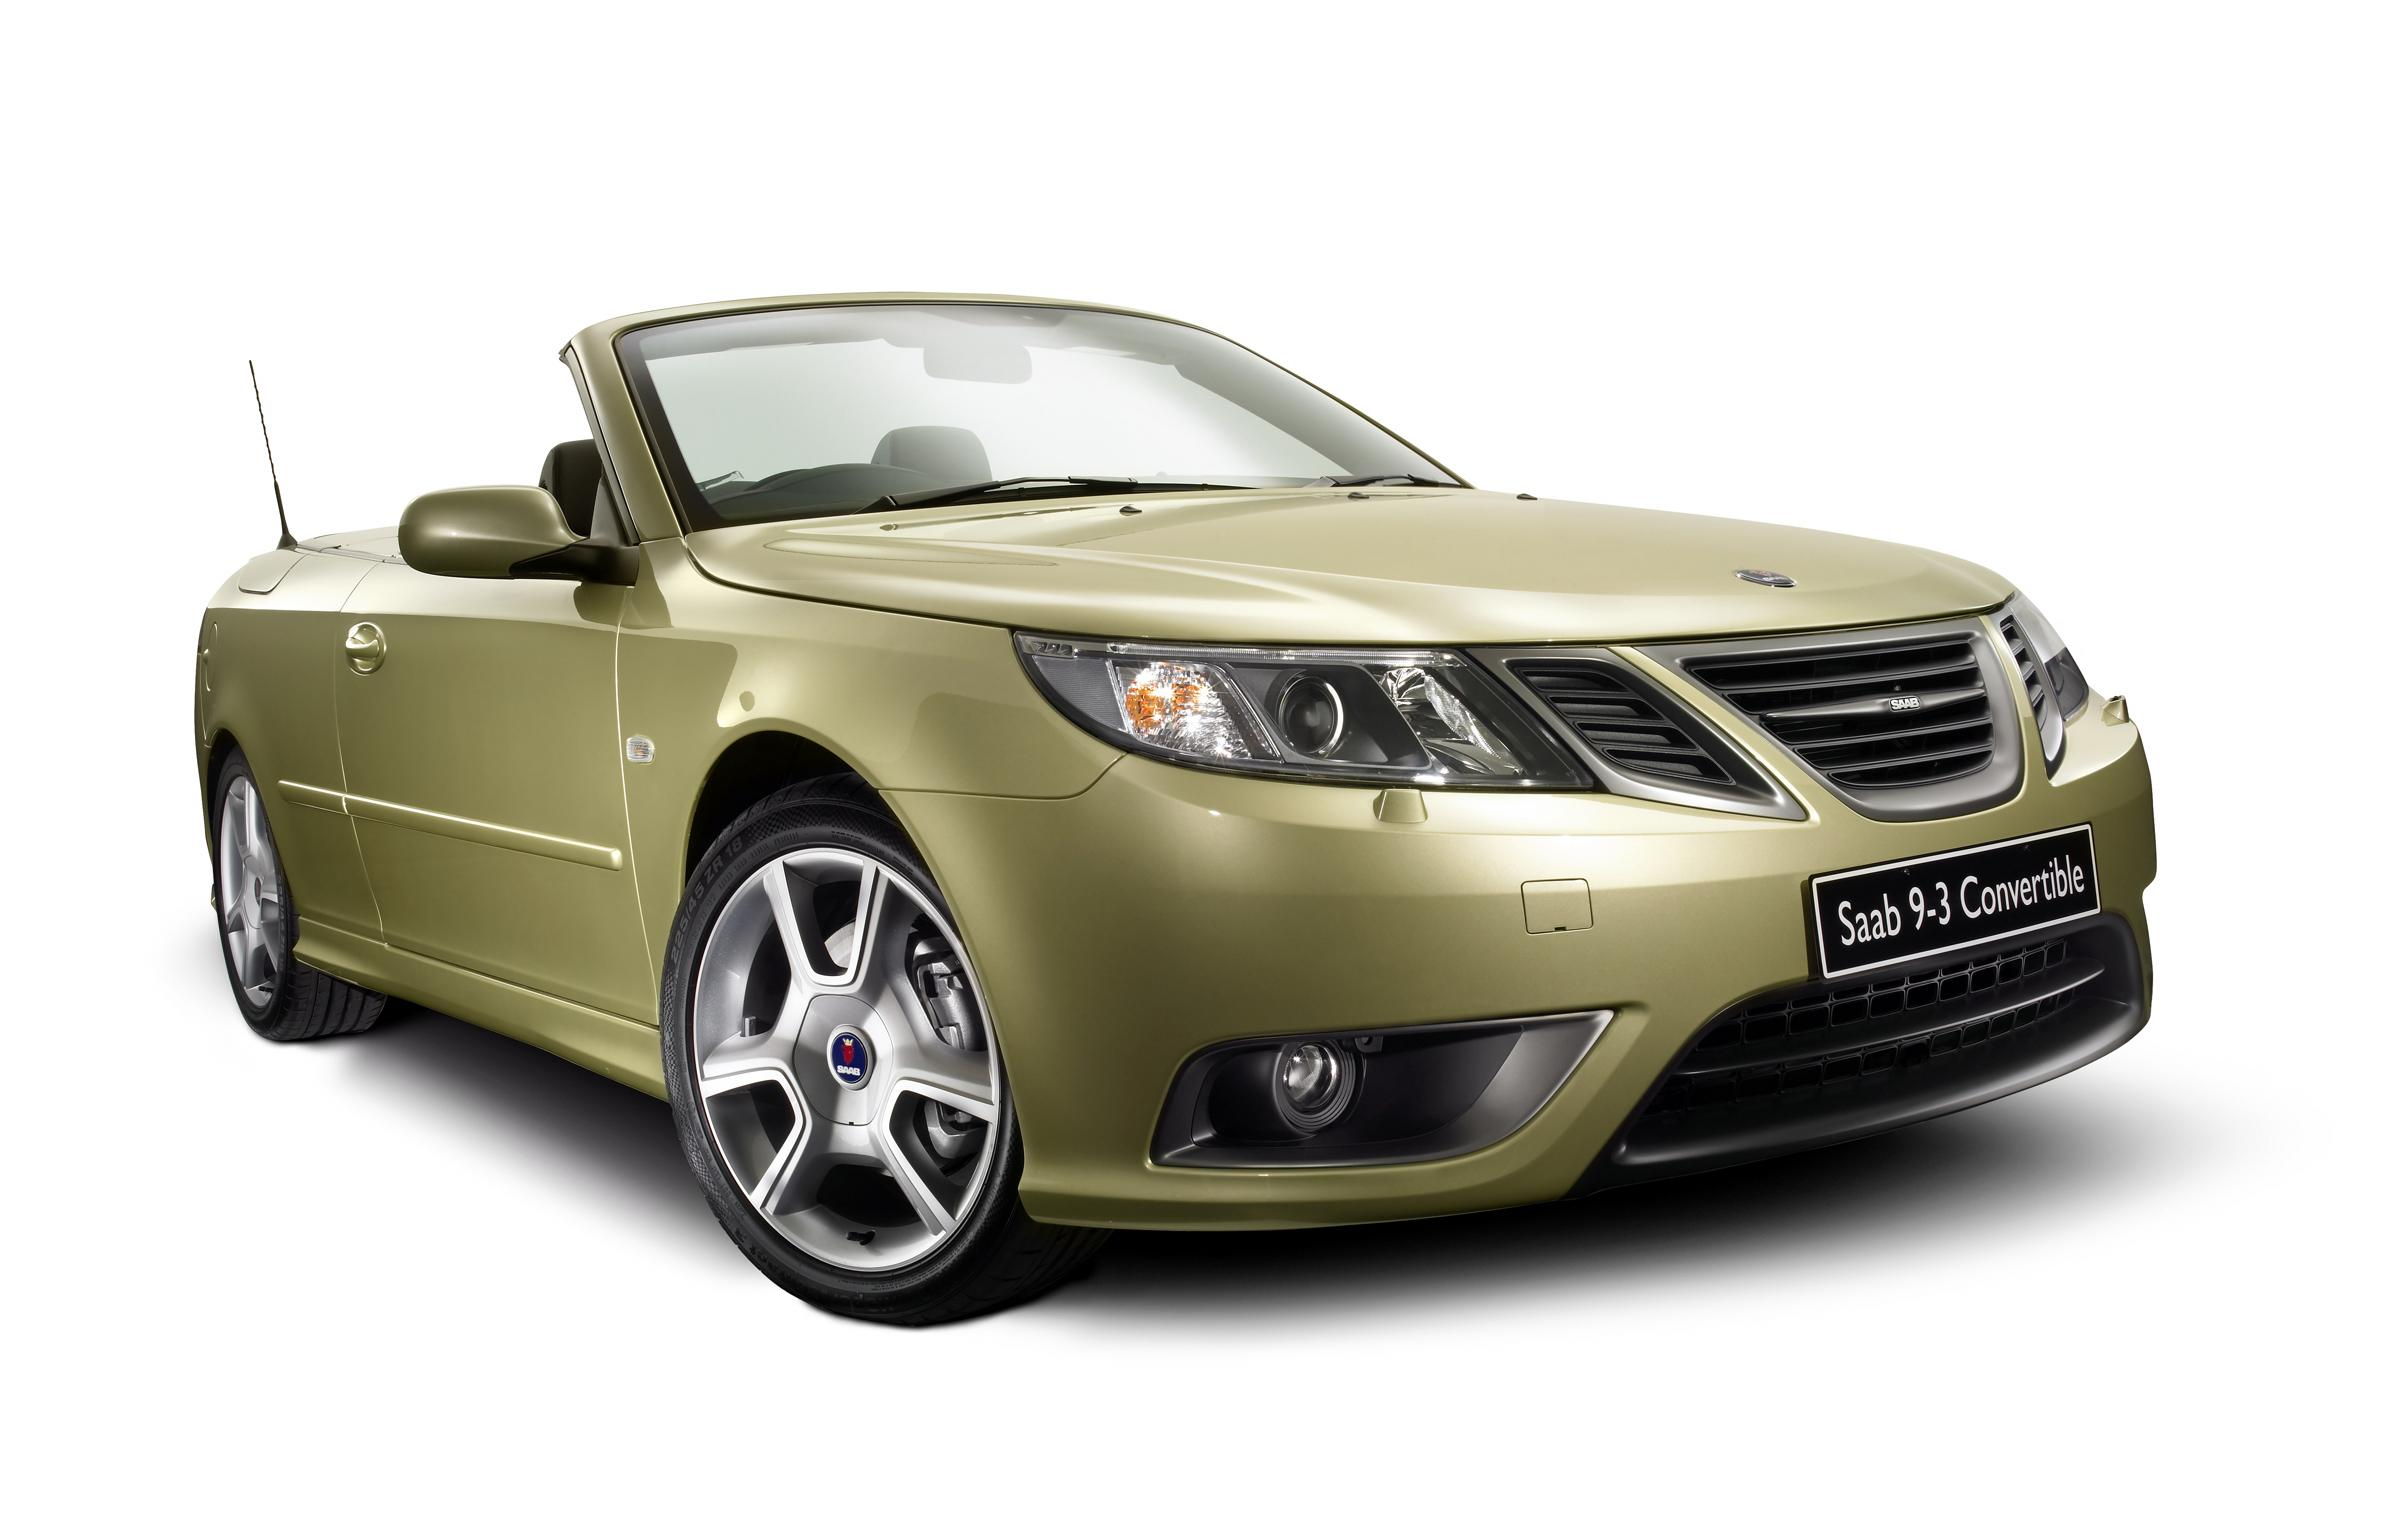 2008 saab special edition 9 3 aero convertible australia gallery 271056 top speed. Black Bedroom Furniture Sets. Home Design Ideas